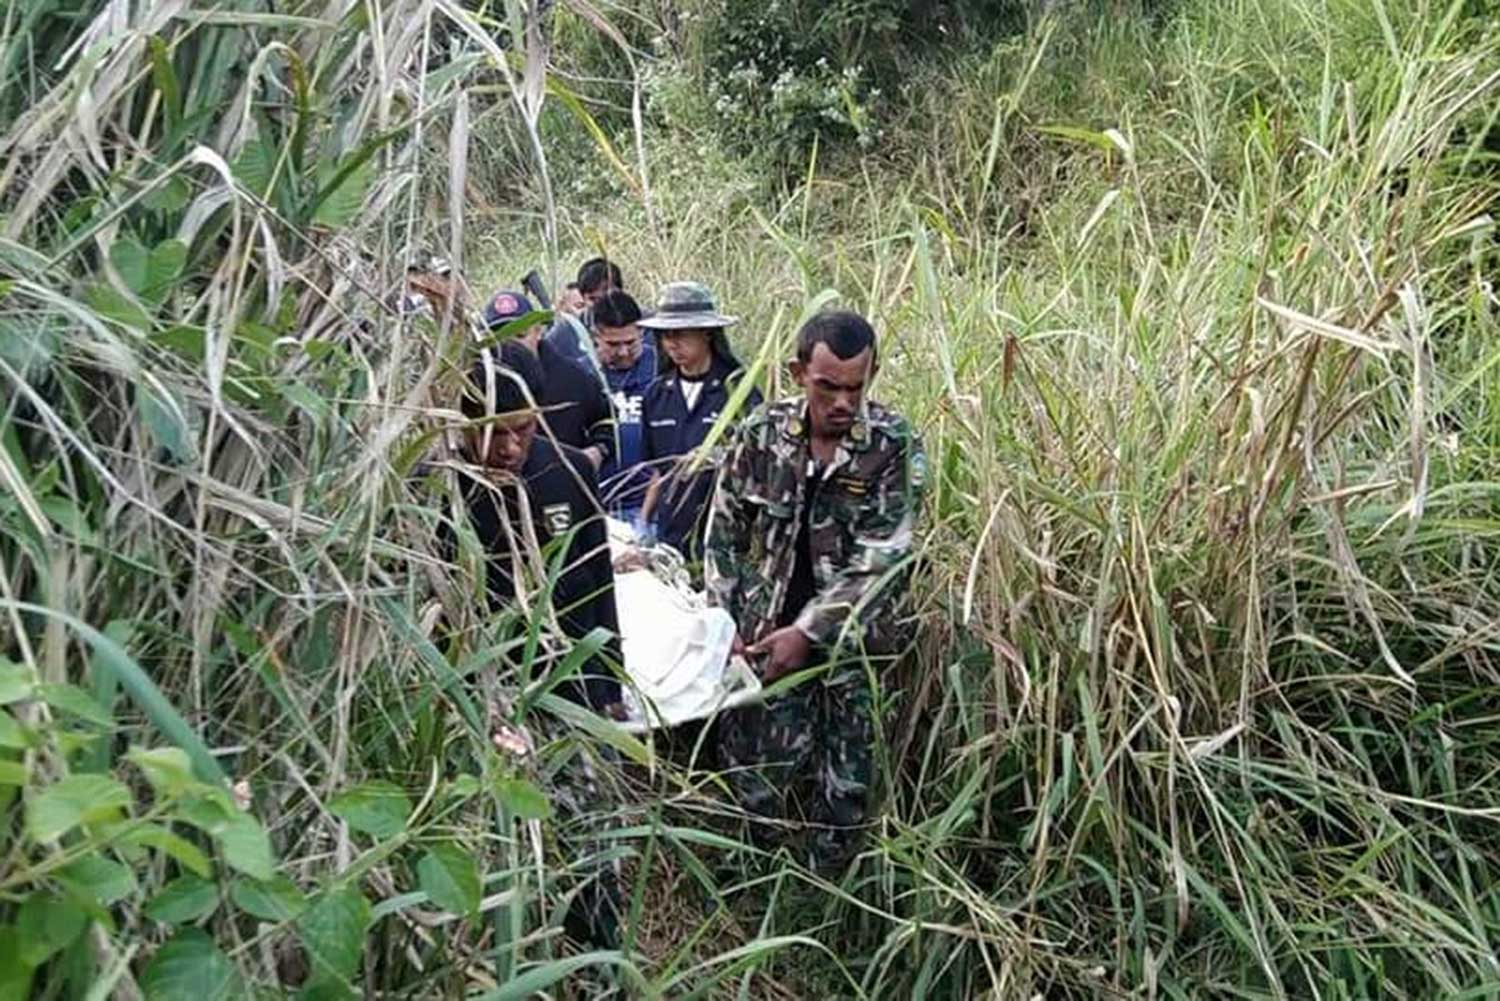 Kui Buri National Park workers carry the body of a 55-year-old colleague from a forest following an elephant attack in the park in Prachuap Khiri Khan on Friday. (Photo by Chaiwat Satyaem)